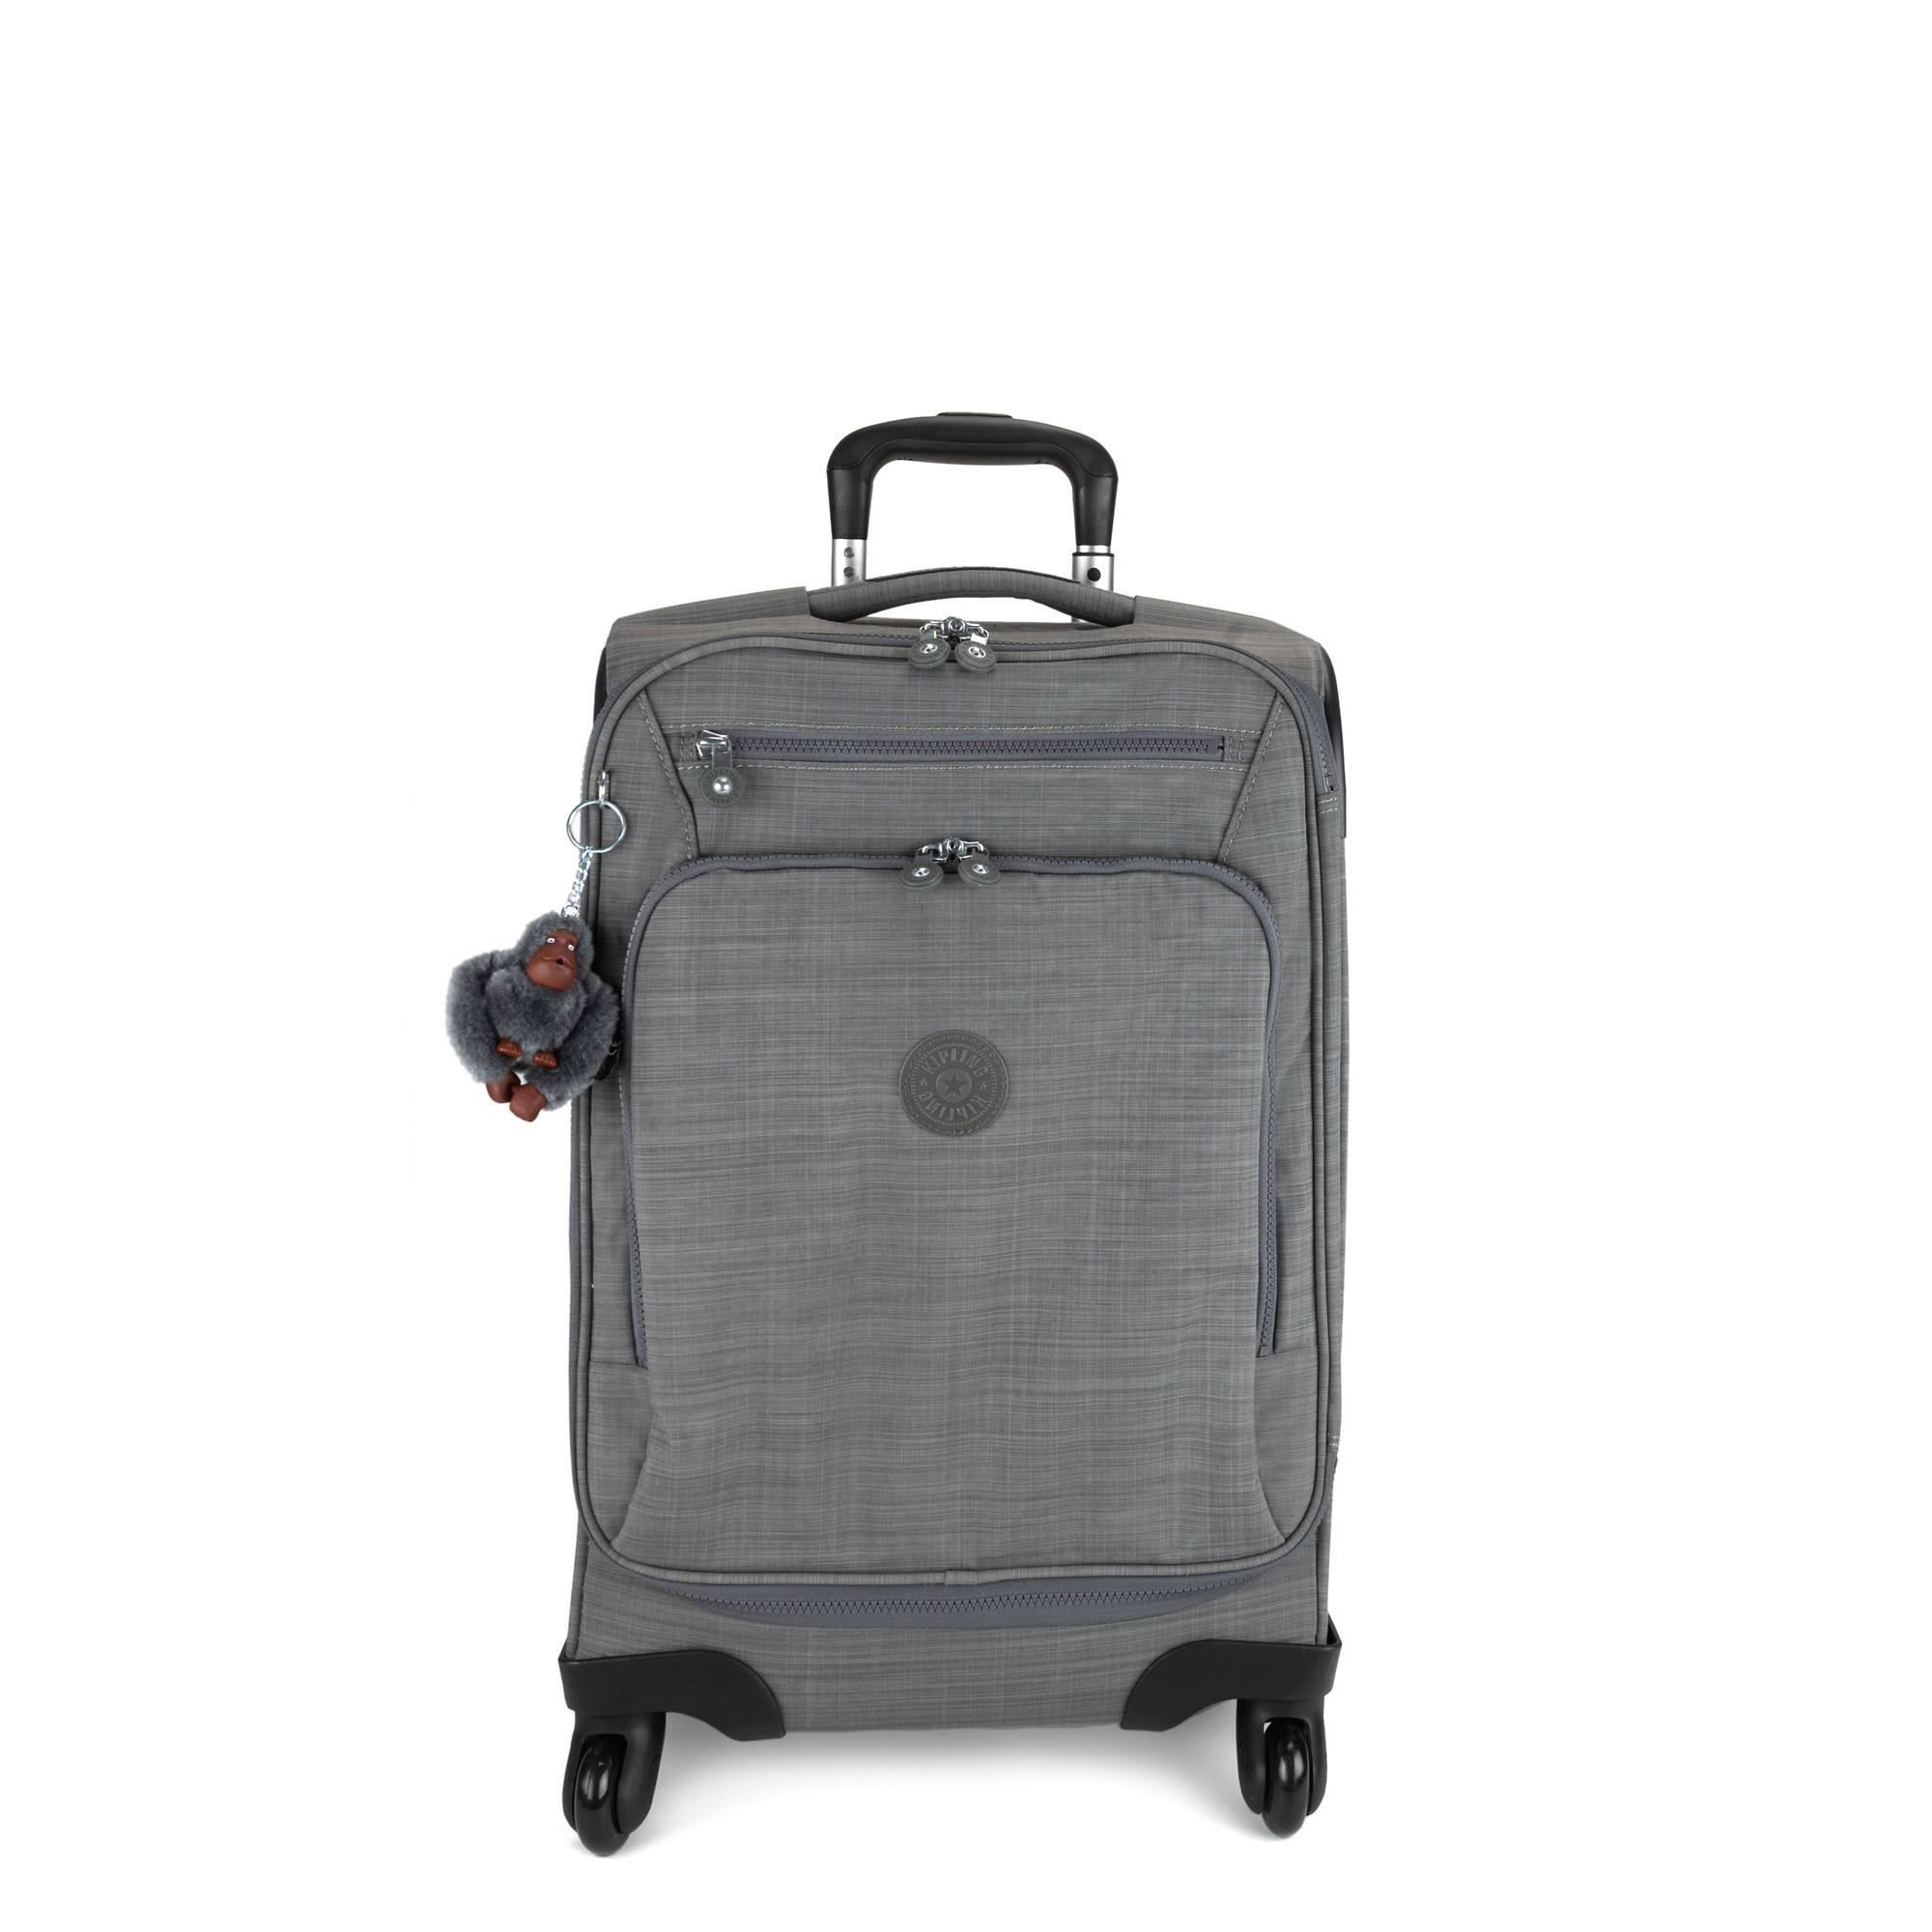 cad601062d3 Youri Spin 55 Small Luggage,Dusty Grey Dazz,large